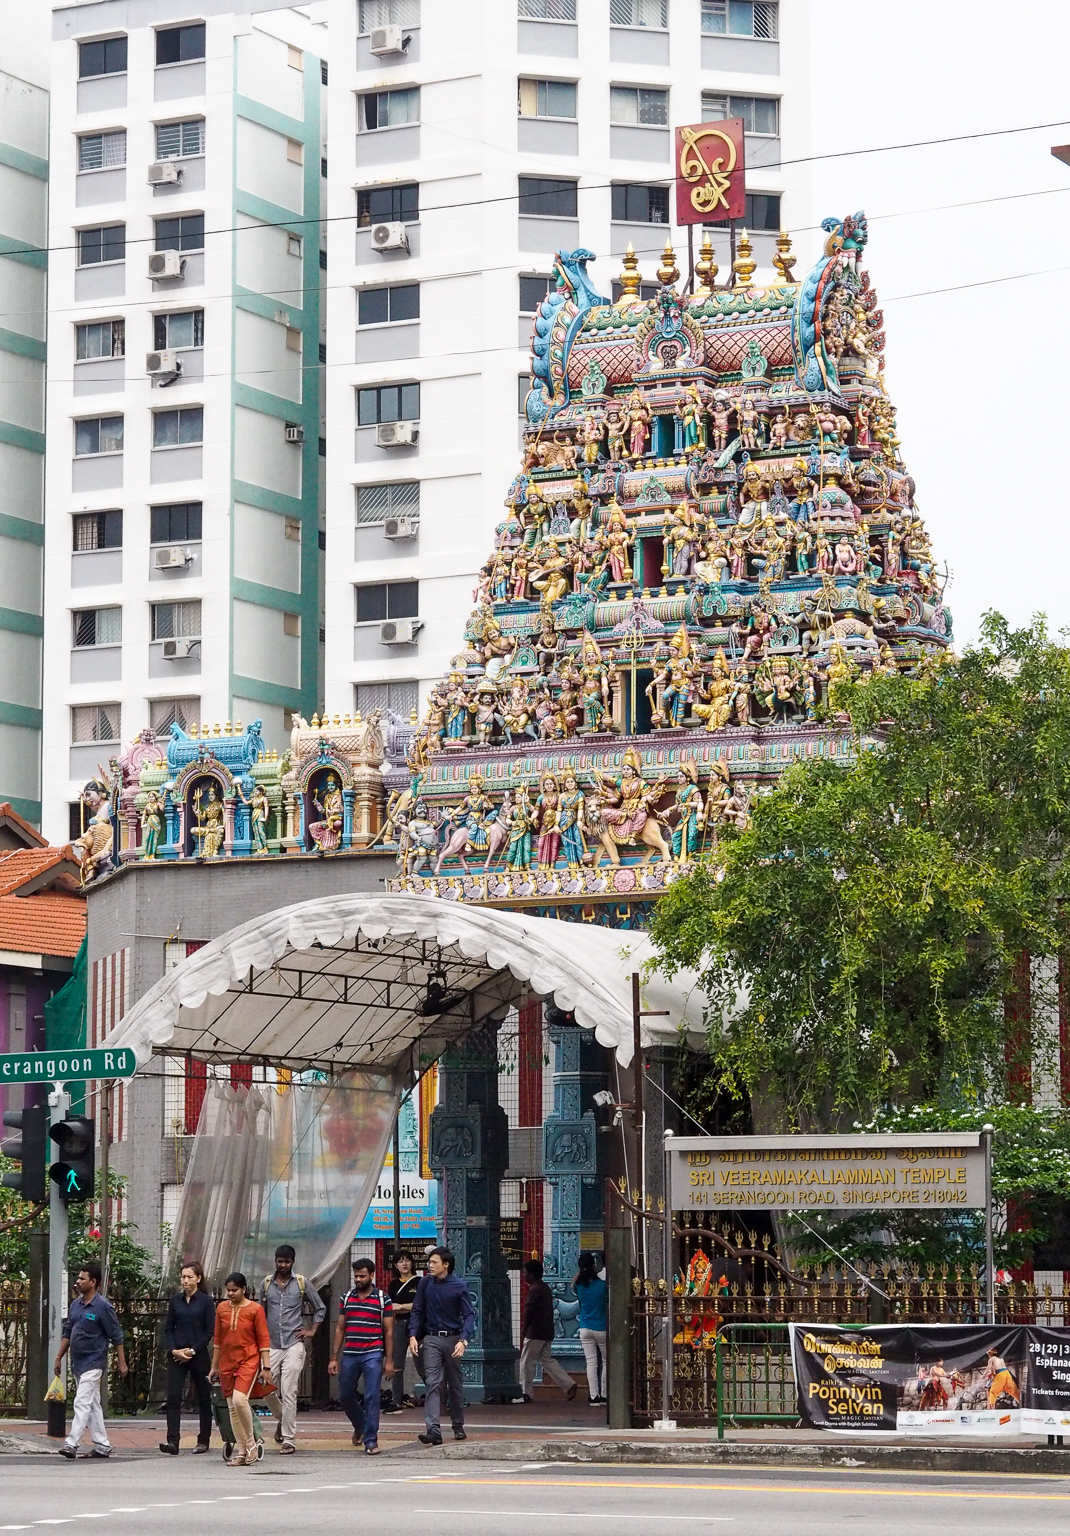 little india Sri Veeramakaliamman